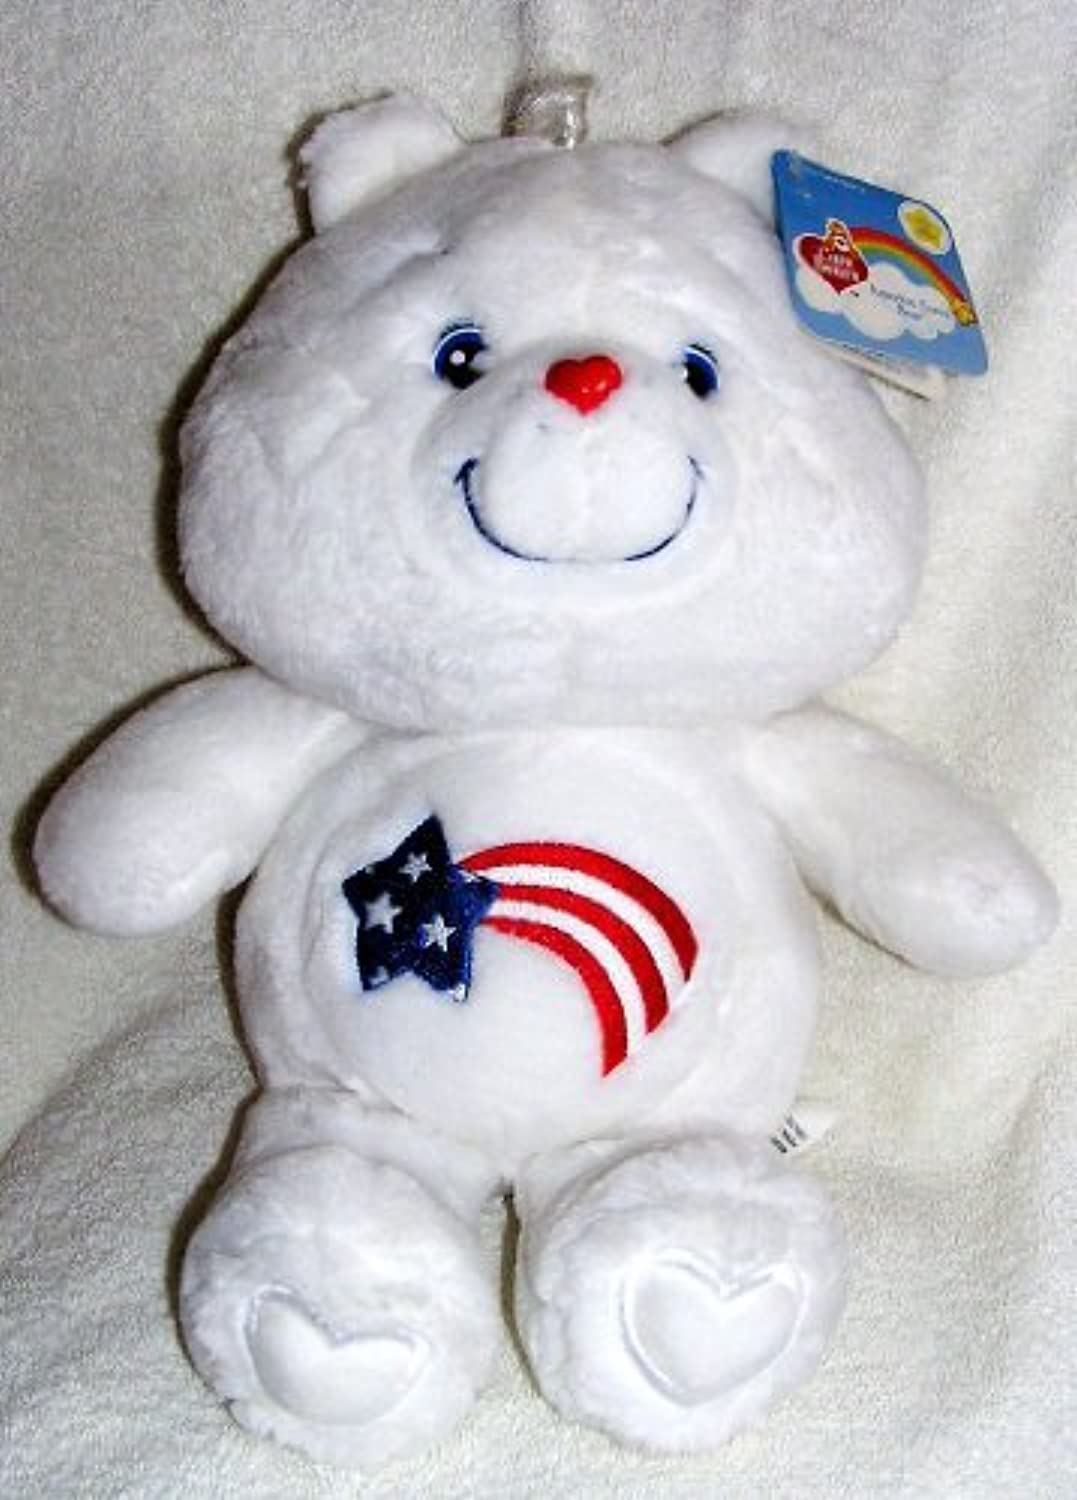 2002 Carlton Cards 20th Anniversary Care Bears 16 Plush America Cares Bear by Care Bears